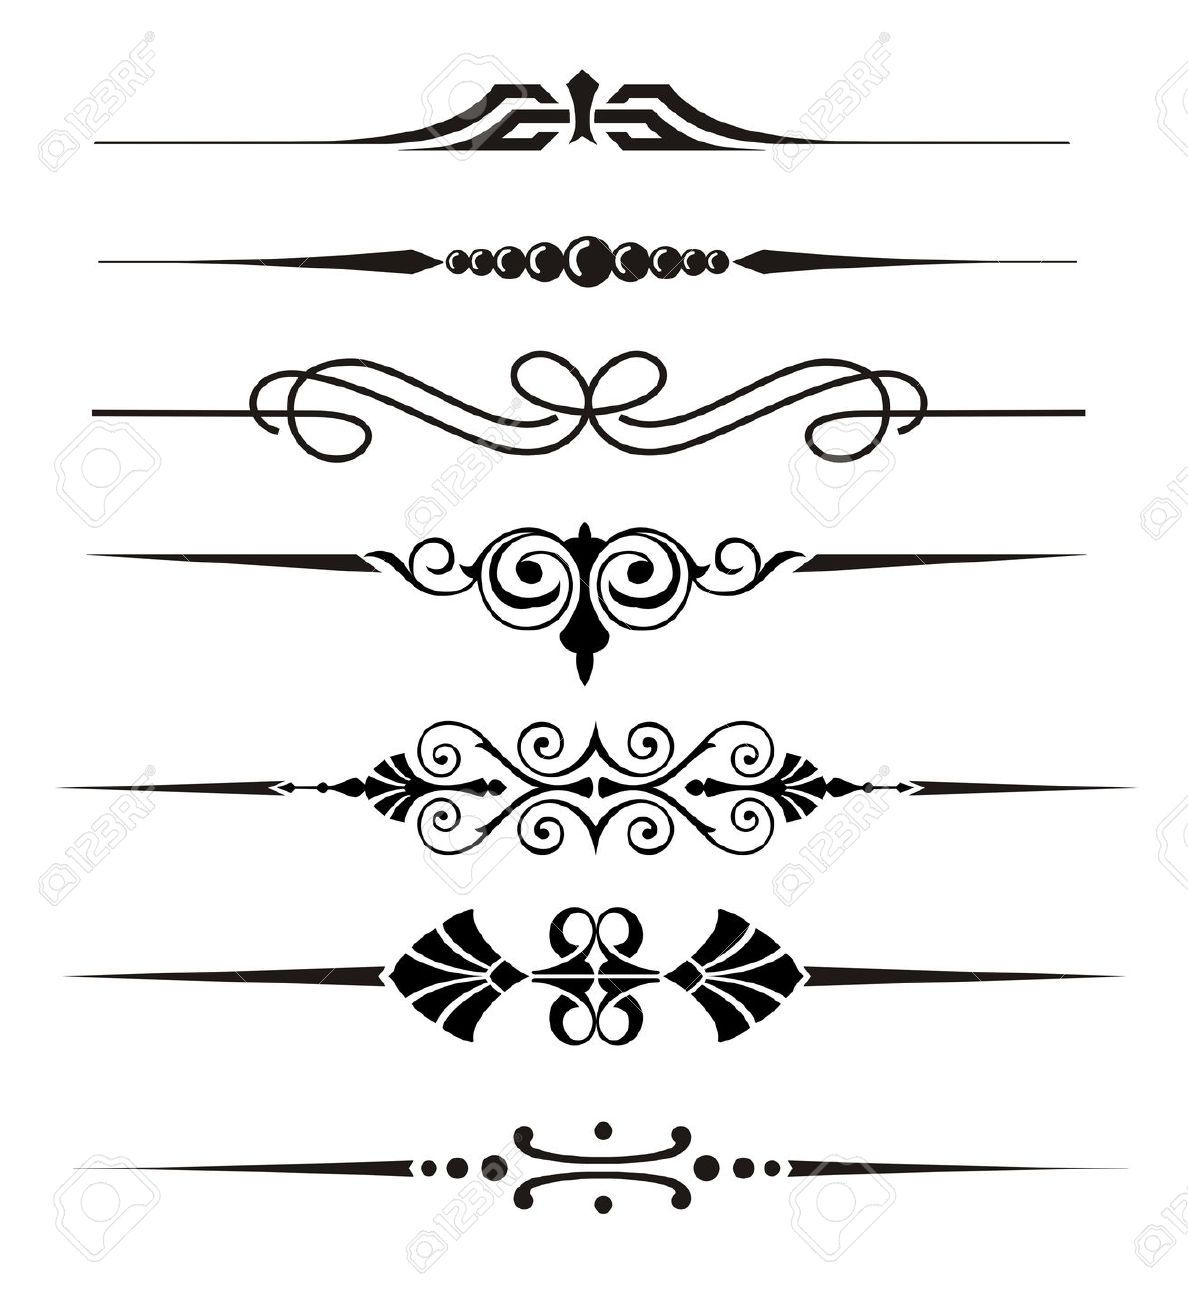 Free Clipart Straight Line : Vecter divider ornaments and graphical elements royalty